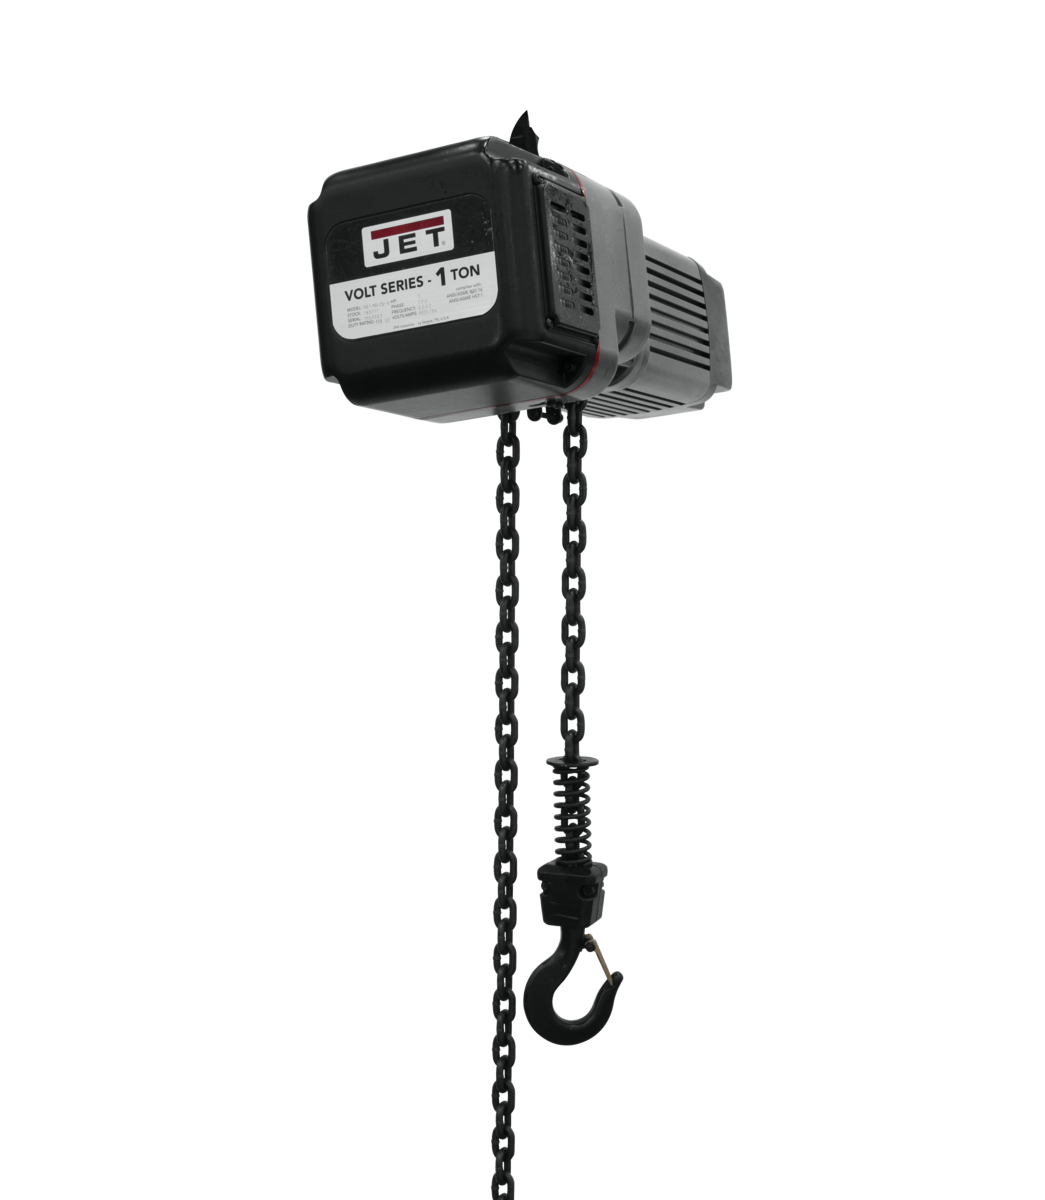 VOLT 1T VARIABLE-SPEED ELECTRIC HOIST 3PH 460V 15' LIFT